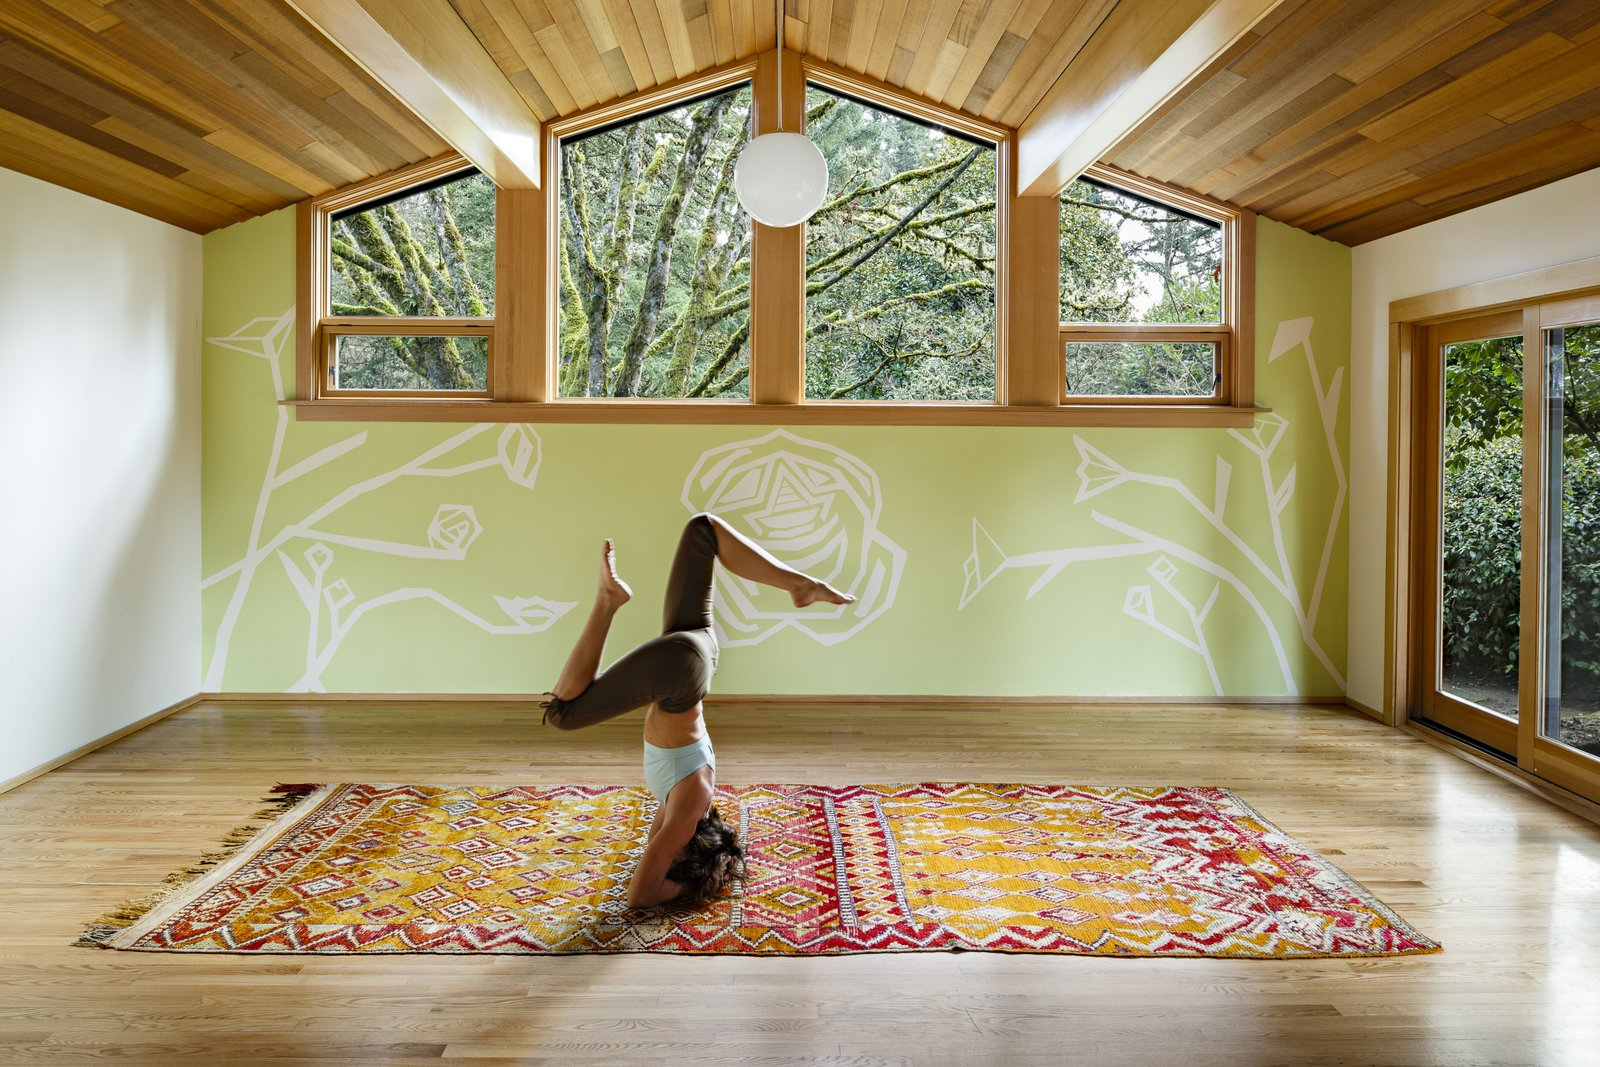 The original garage had been previously converted into a home office space. However, with the addition of wood ceilings, and sliding doors leading out to the garden it was transformed into a yoga studio for the homeowner where she now teaches and practices daily.